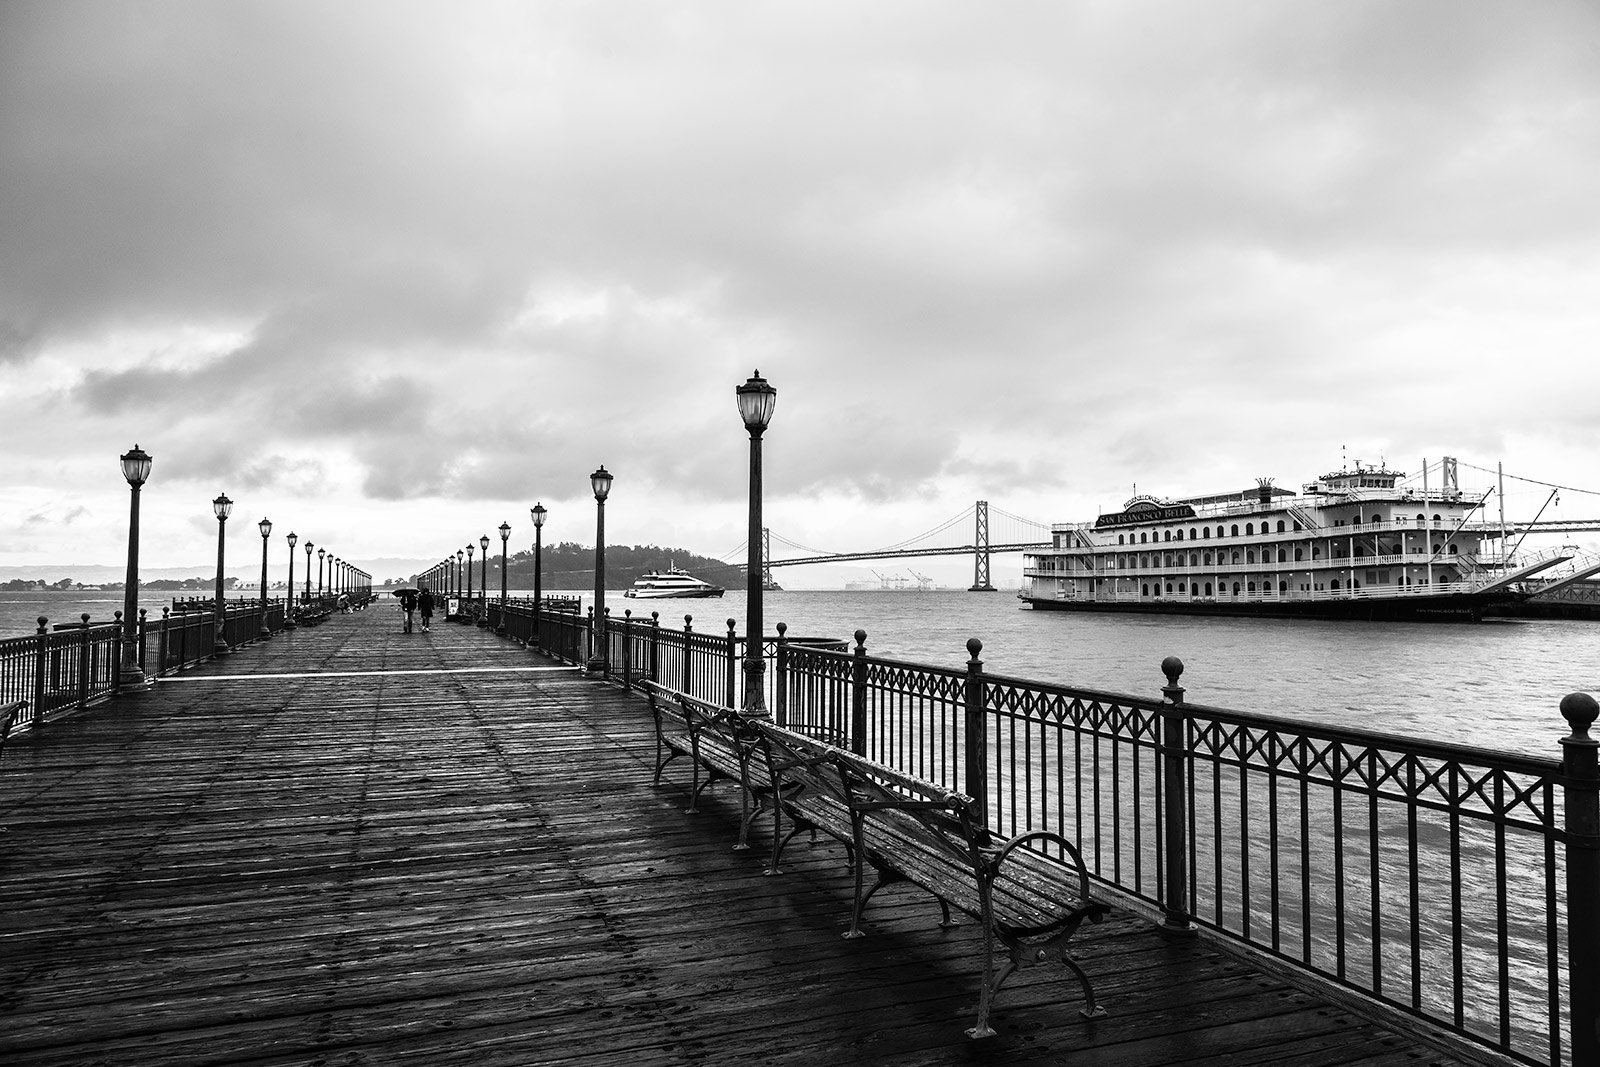 One of the Piers in San Francisco and La Belle